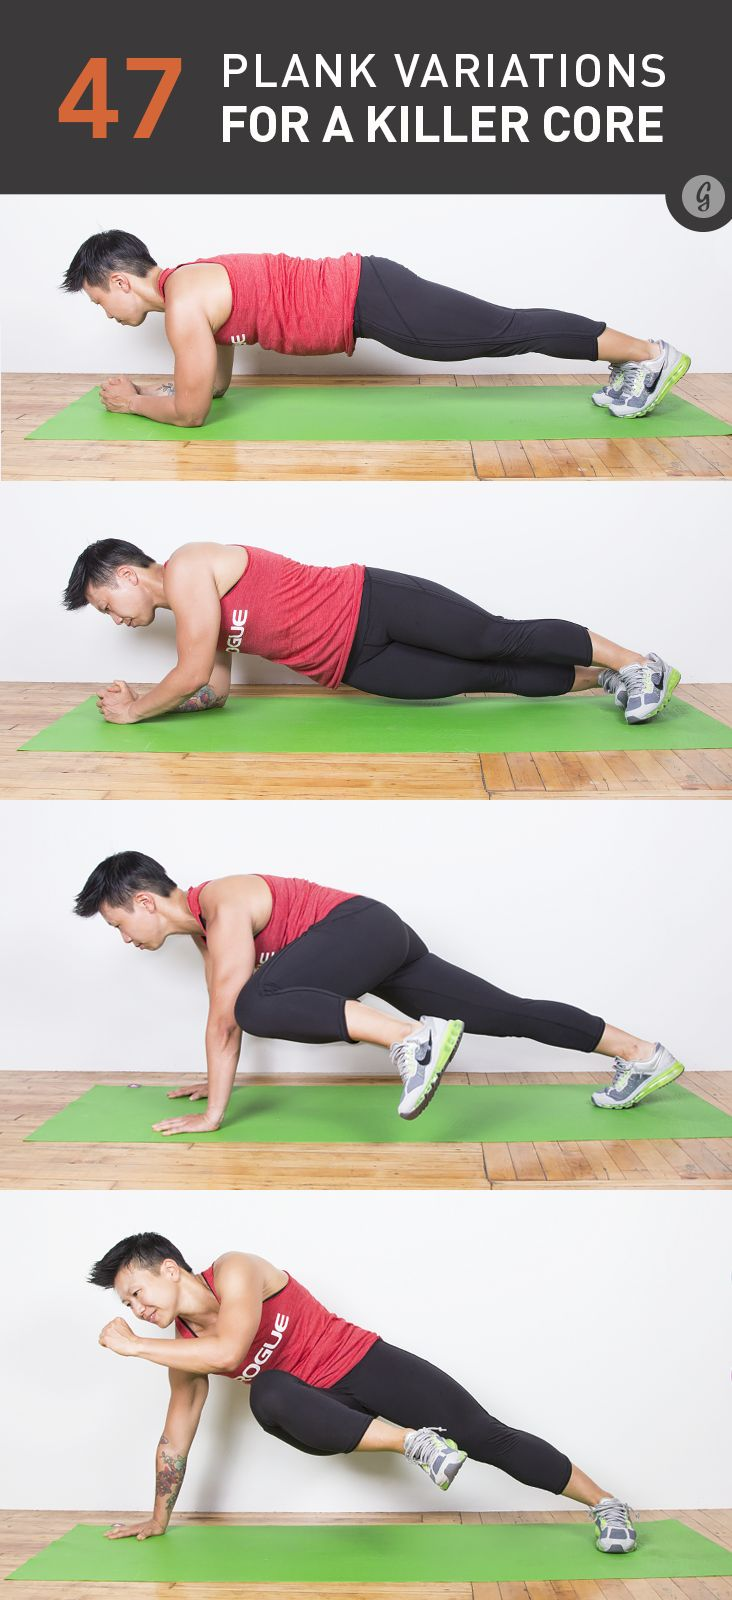 Planks allow you to work your core without the risks of back injury and overstressed hip flexors that come with traditional sit-ups. #fitness #abs #workout